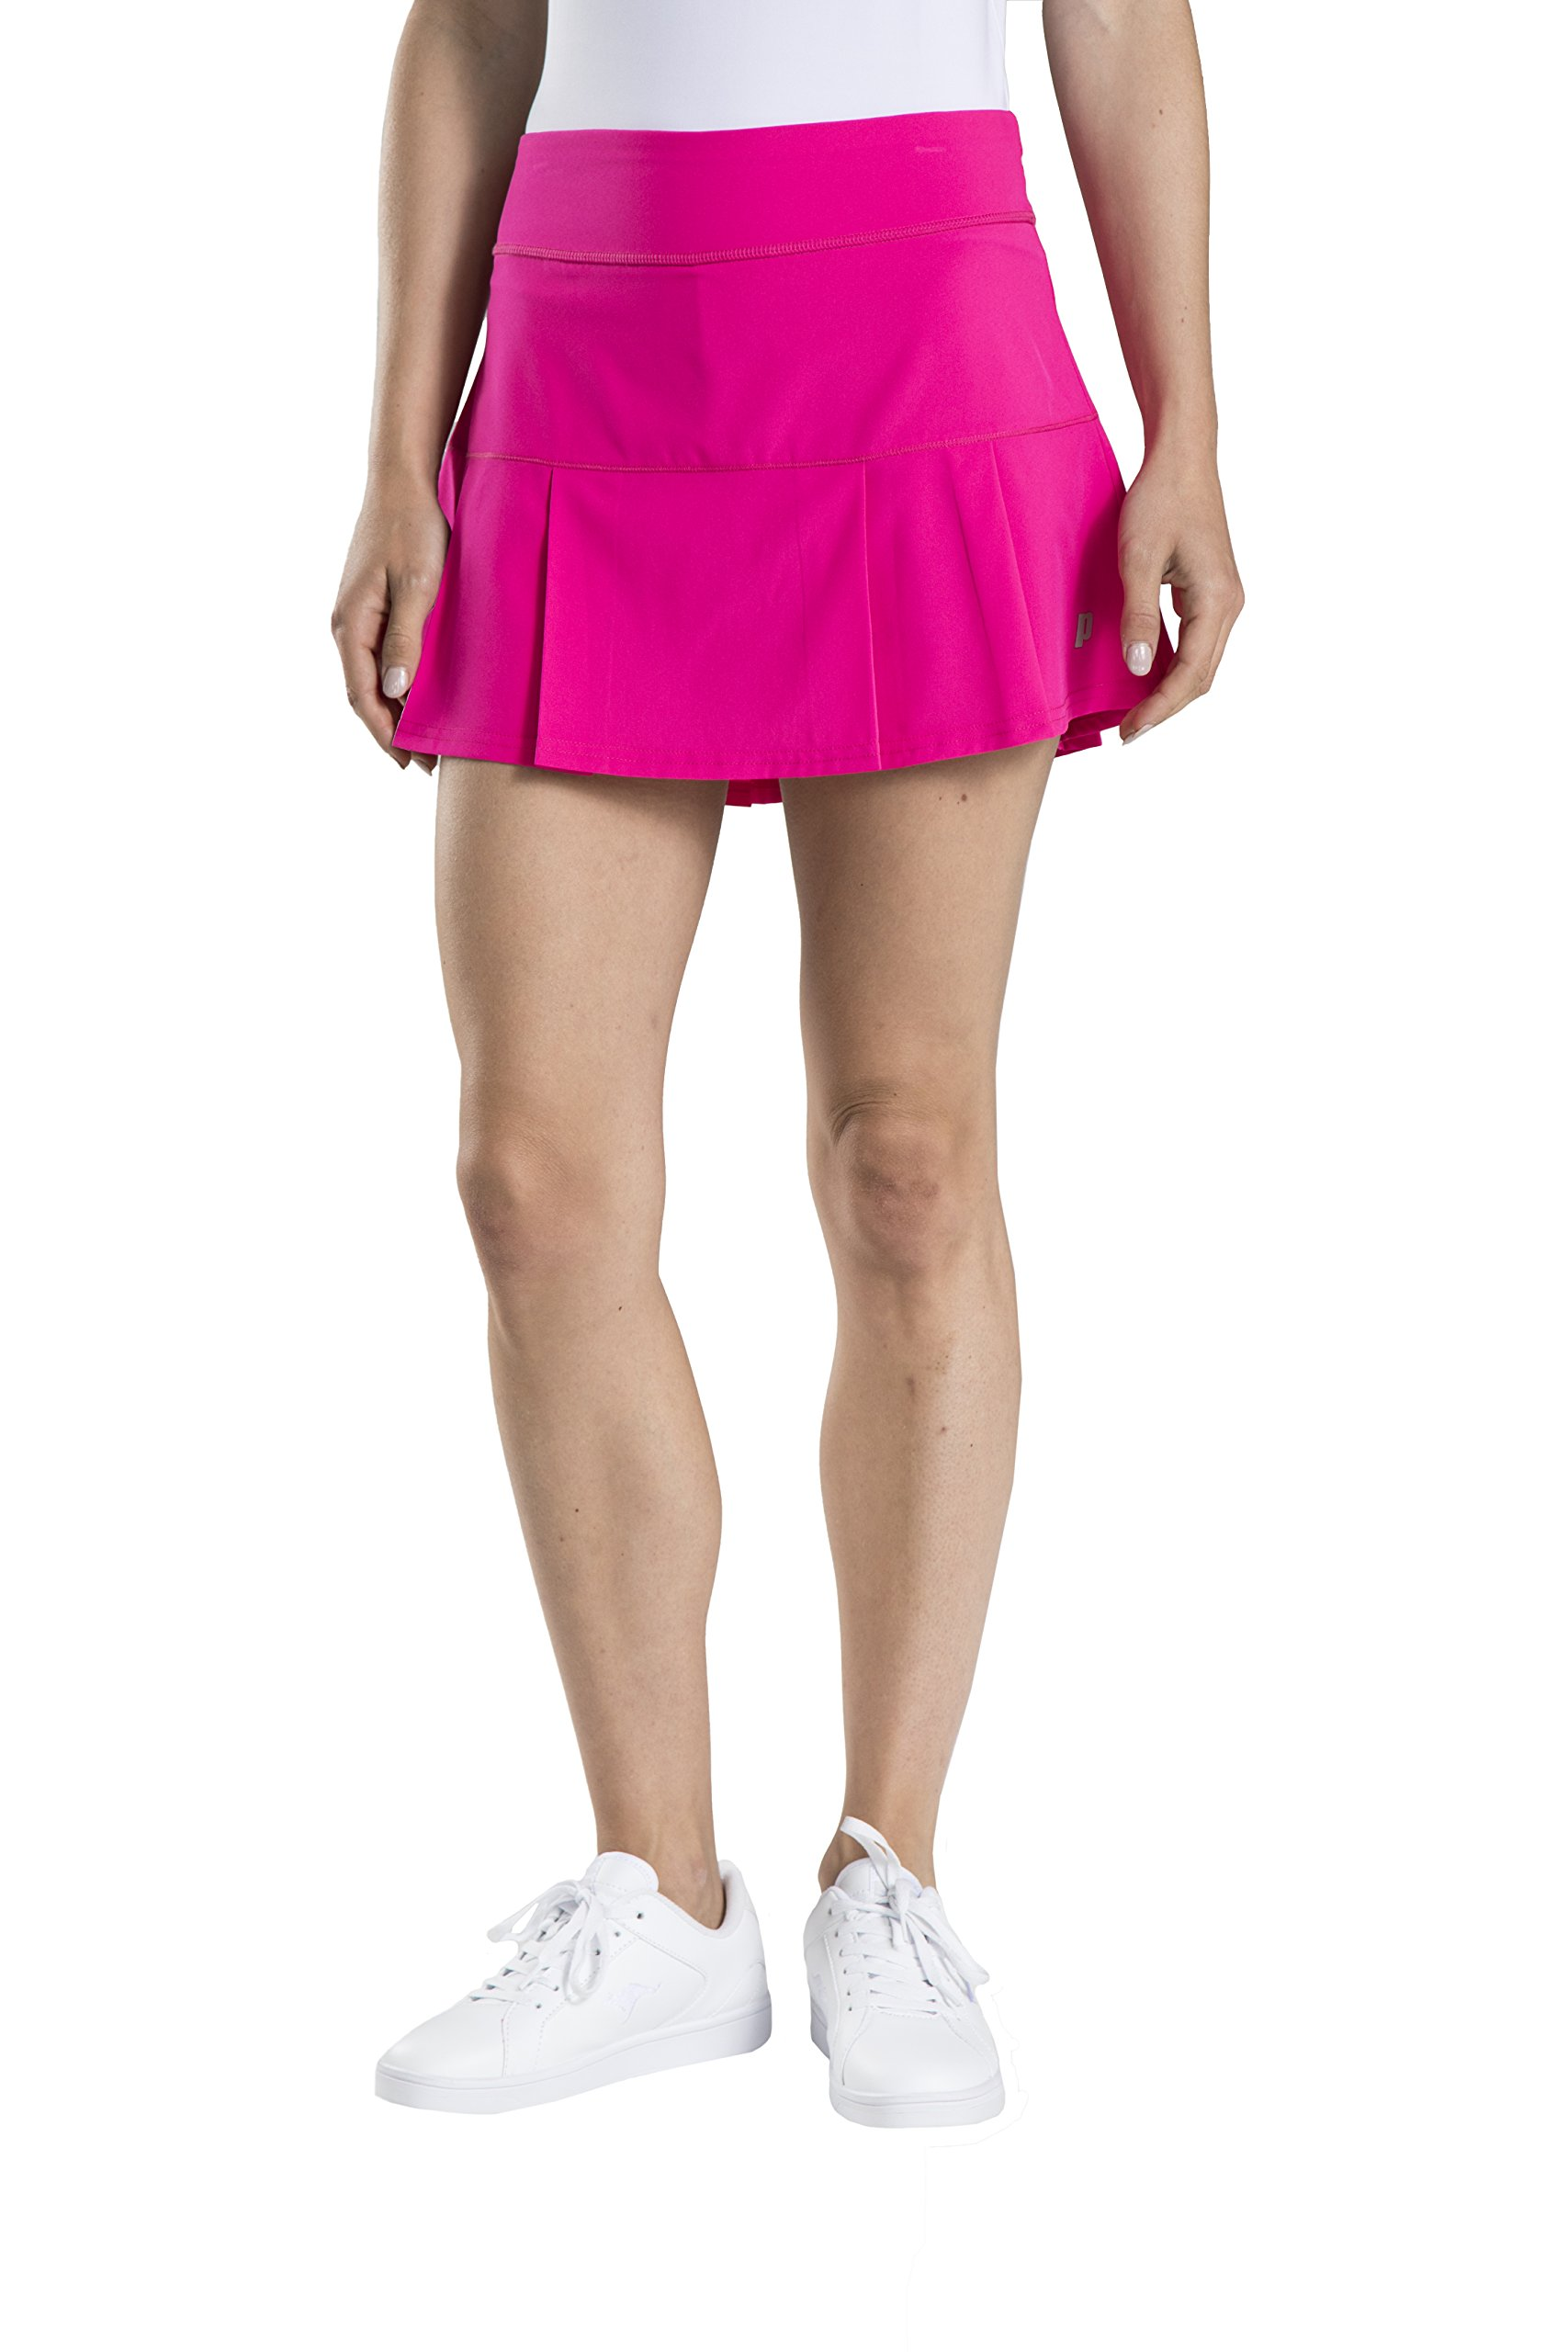 Prince Women's Stretch Woven Pleated Tennis Skort, Cosmos Pink, Large